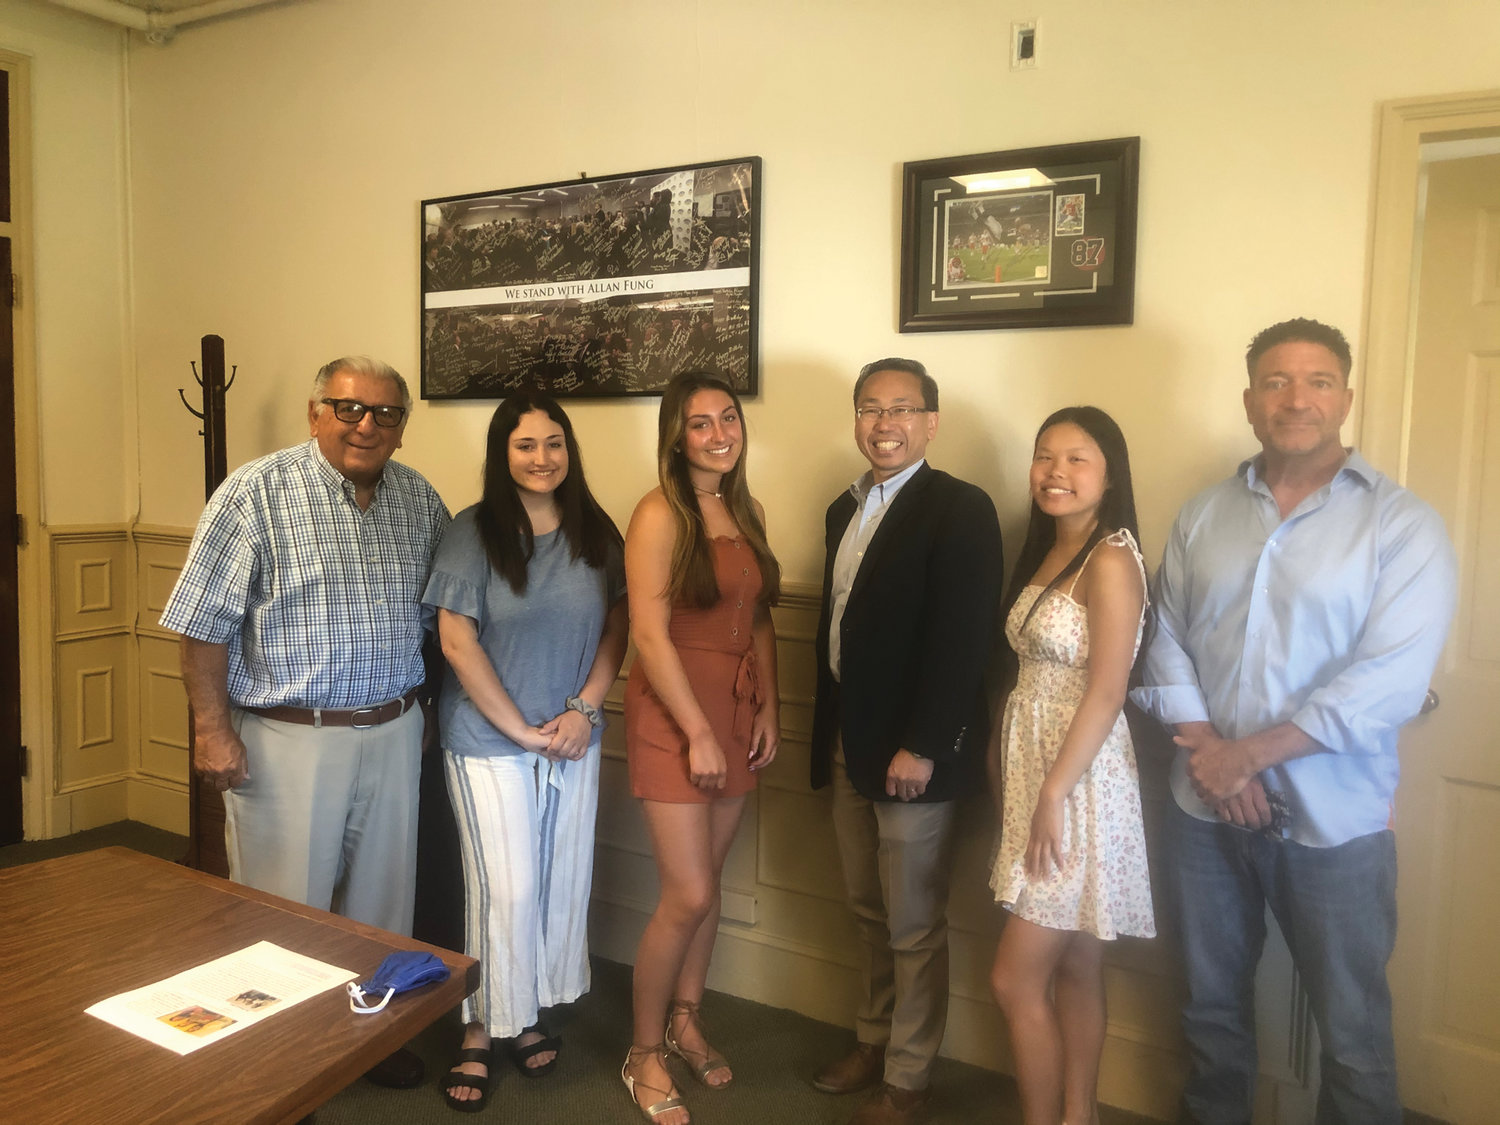 TOP TEAM: Jordan Simpson, Emma Hanley and Ava Santamaria recently met with Mayor Allan Fung and School Committee members Michael Traficante and Vincent Turchetta to be honored for their team's fundraising success.